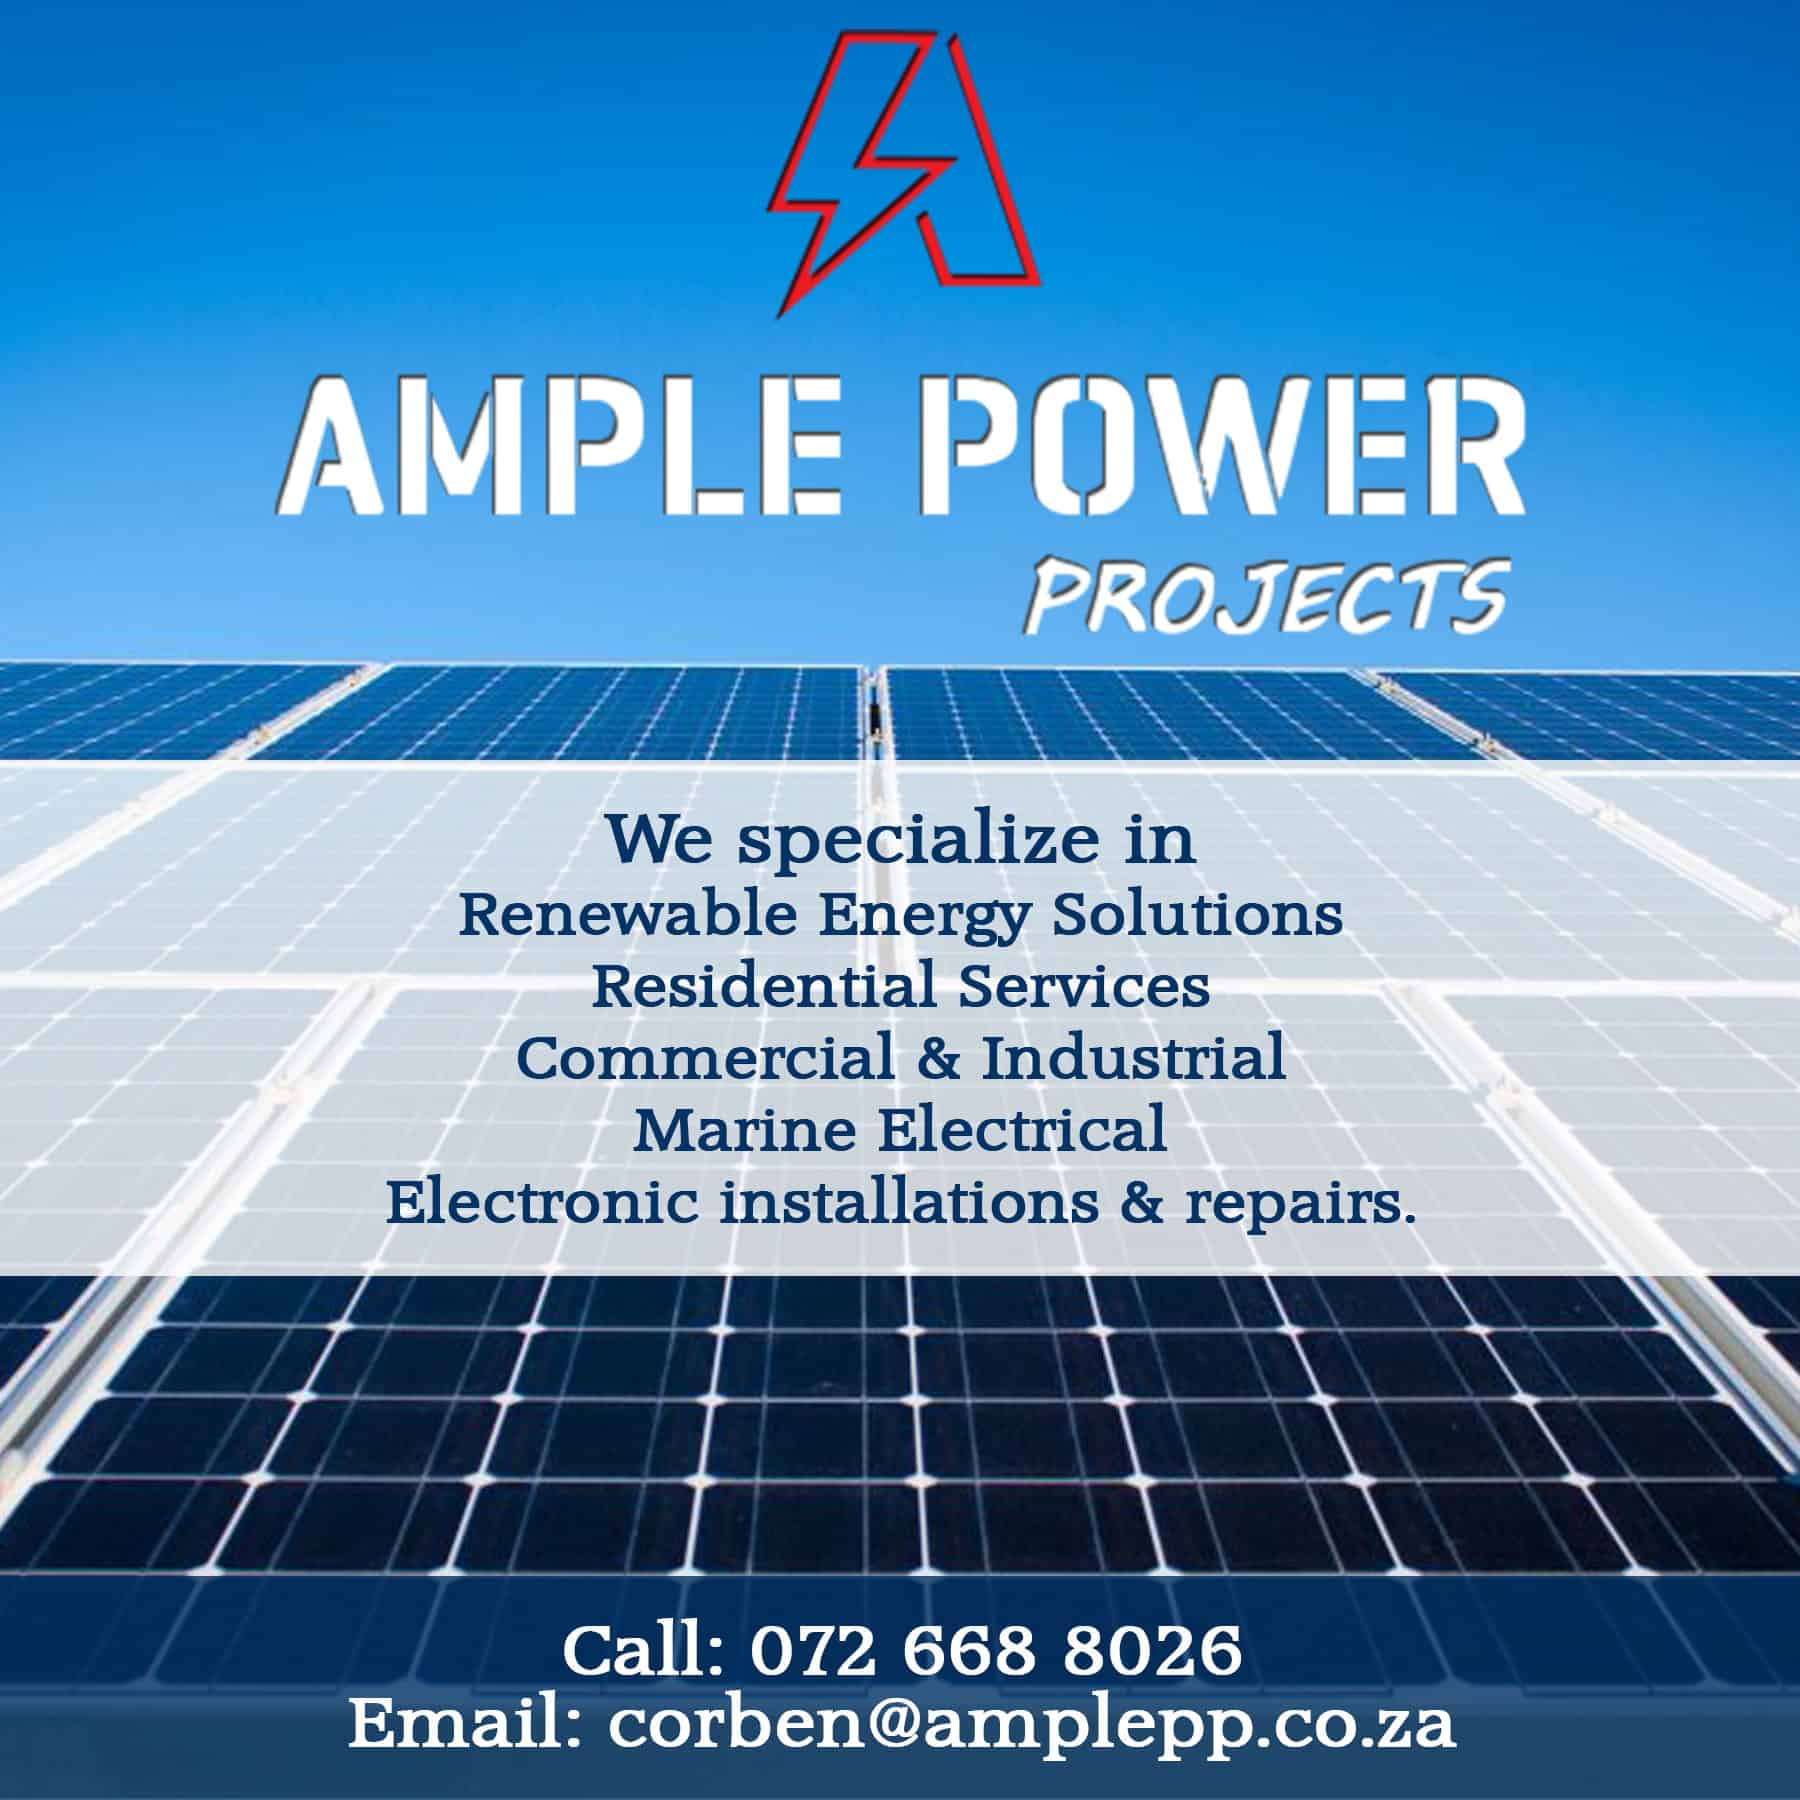 Ample Power Projects